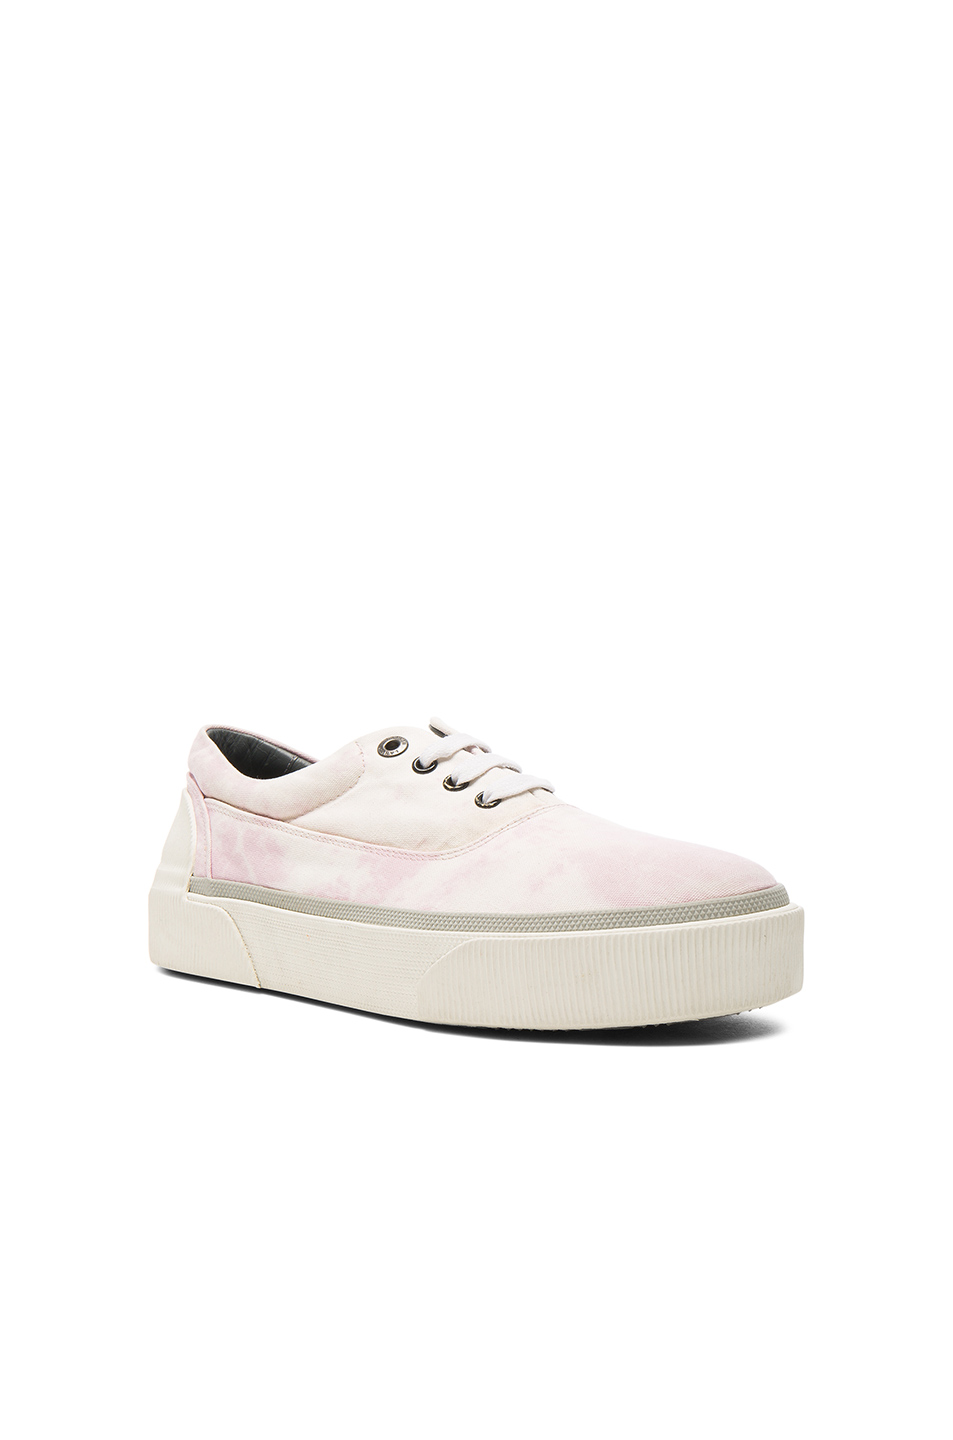 Lanvin Worn Fabric Oxford Sneakers in Ombre & Tie Dye,Pink